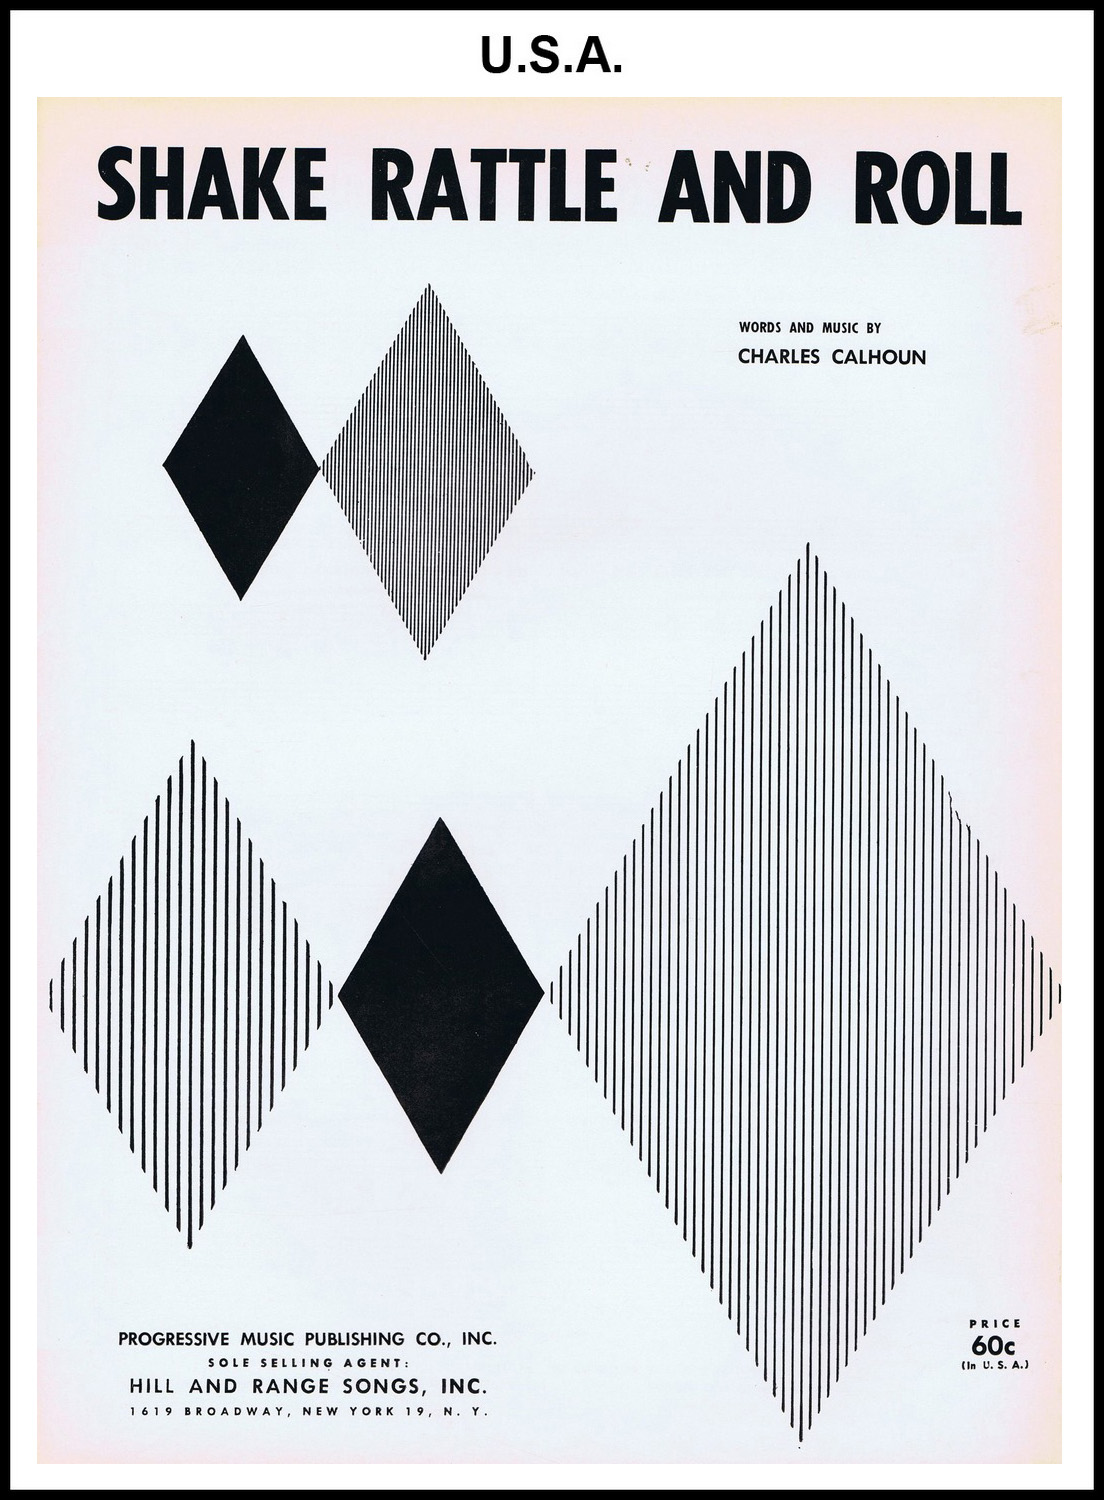 1956 - Shake, Rattle & Roll (USA 60c) (CHRIS GILES COLLECTION)